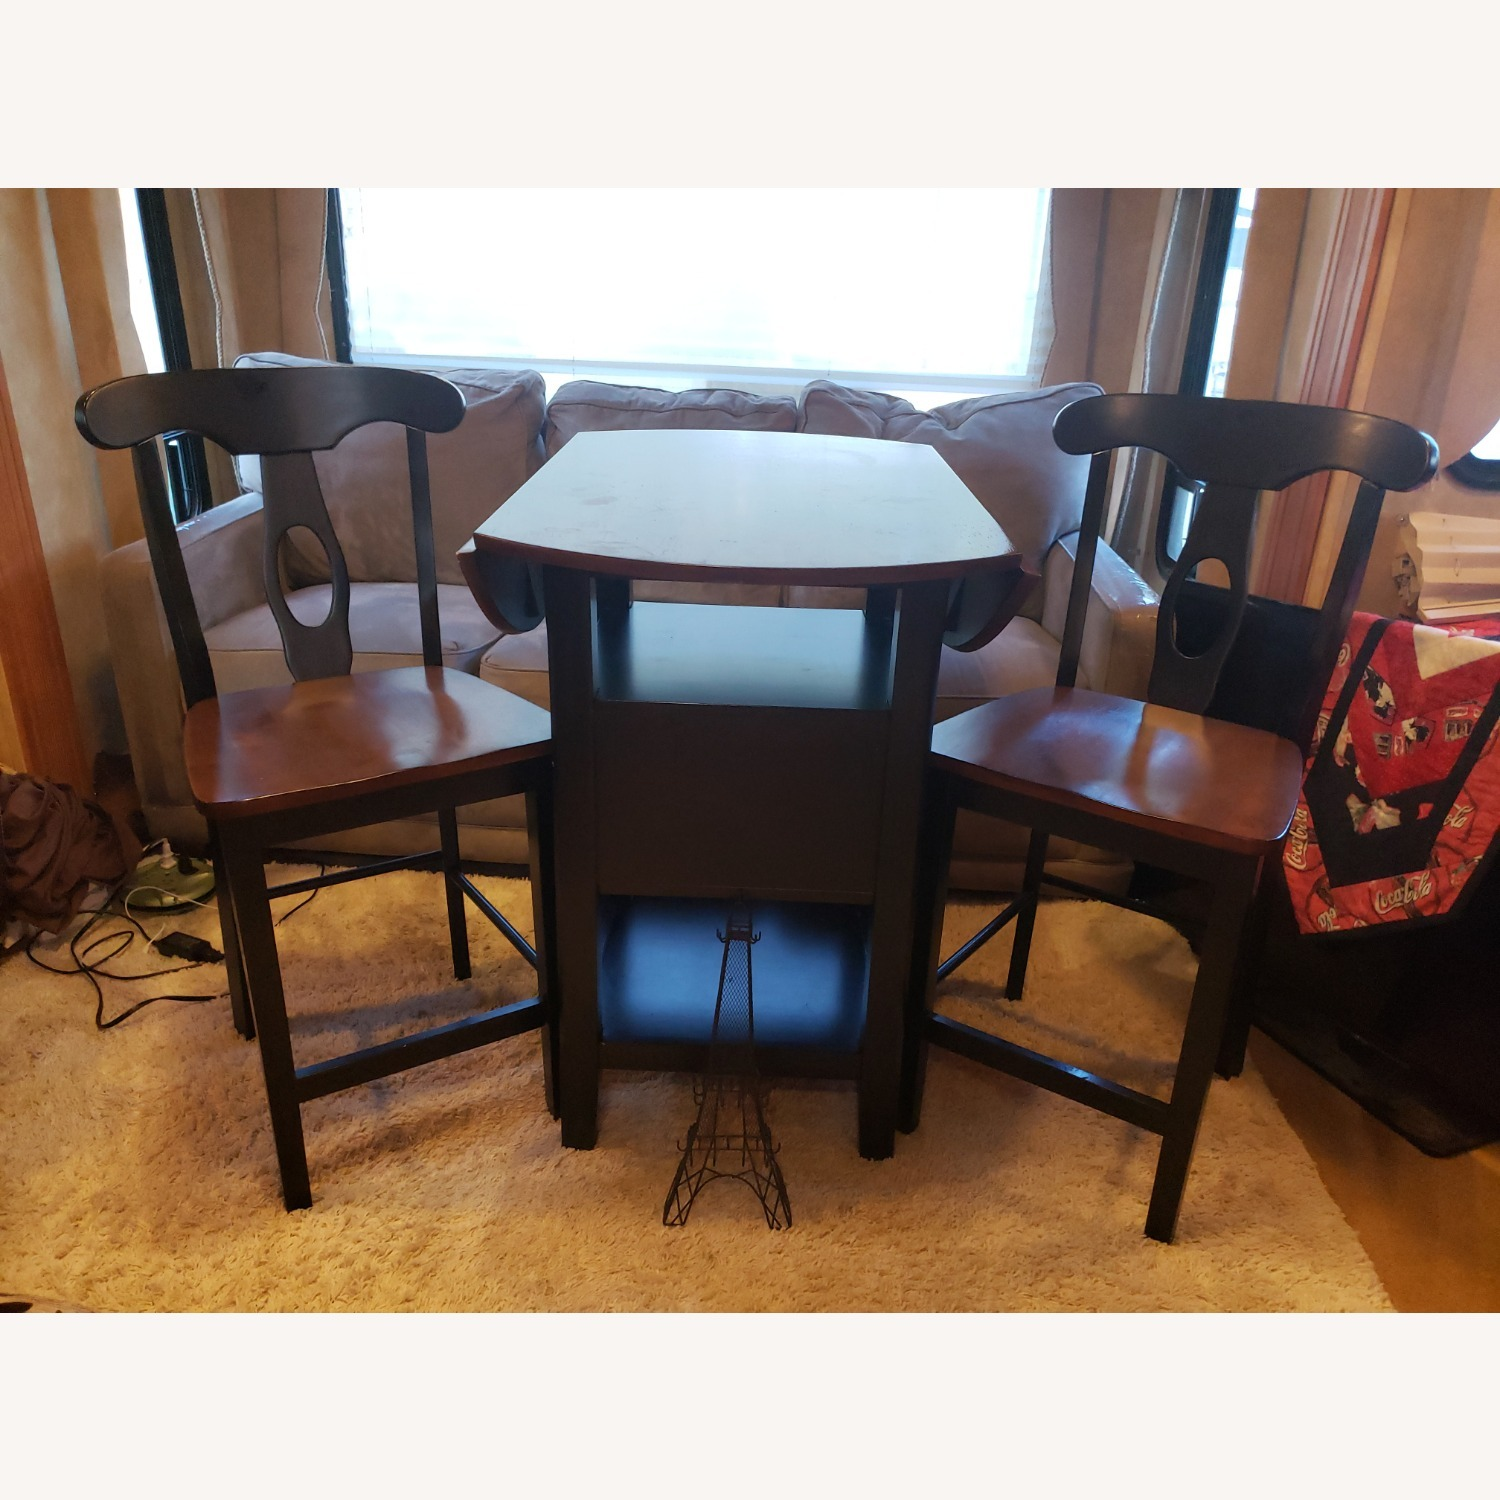 Bistro Dining Set with Drop Leaves - image-4